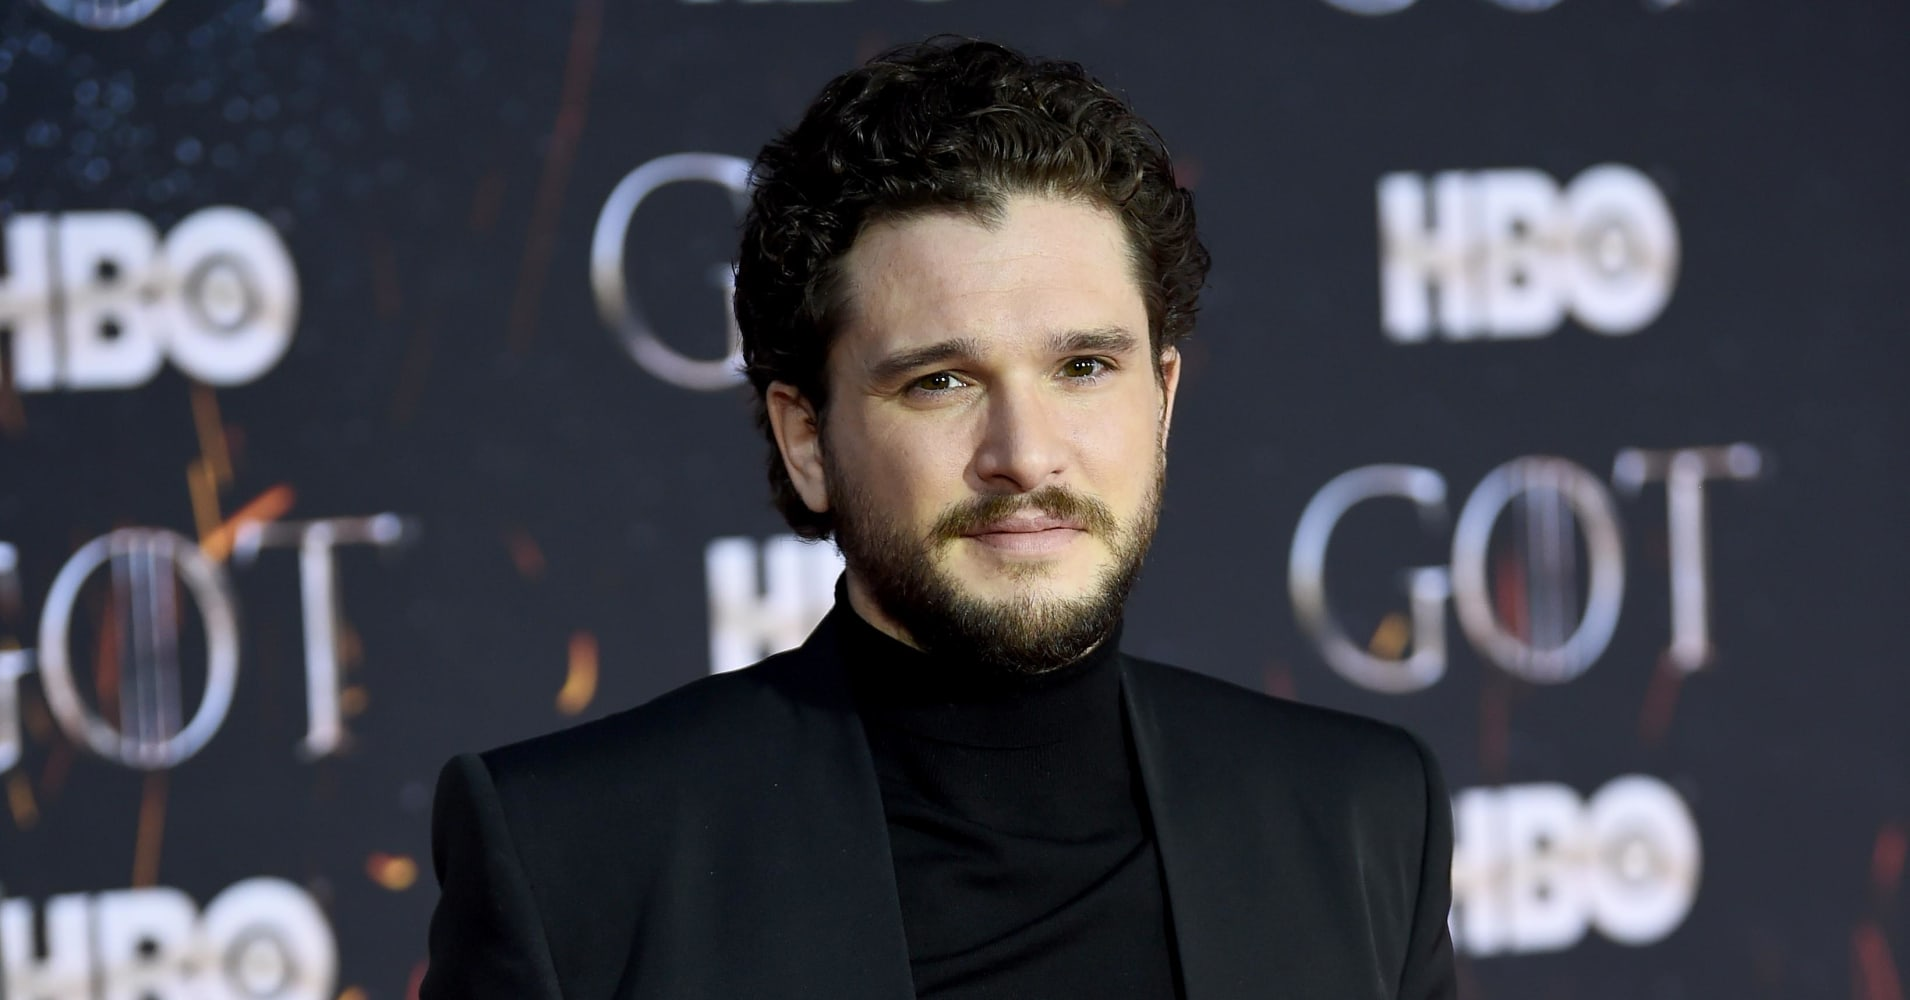 Harington attends 'Game Of Thrones' Season 8 Premiere on April 03, 2019 in New York City.